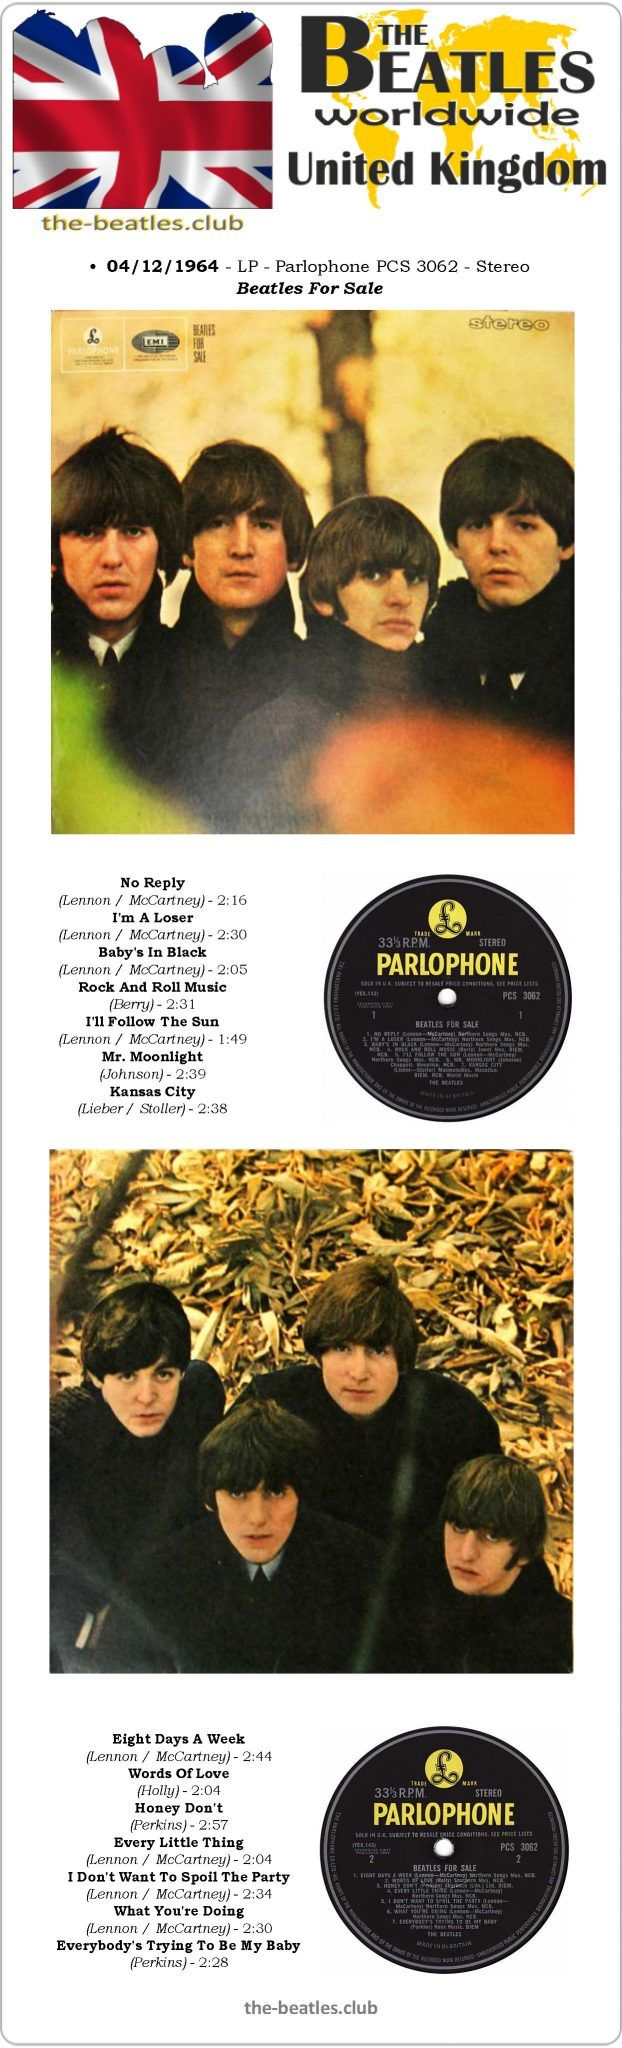 The Beatles UK LP Parlophone PCS 3062 Stereo Beatles For Sale Vinyl Record Long Play Discography